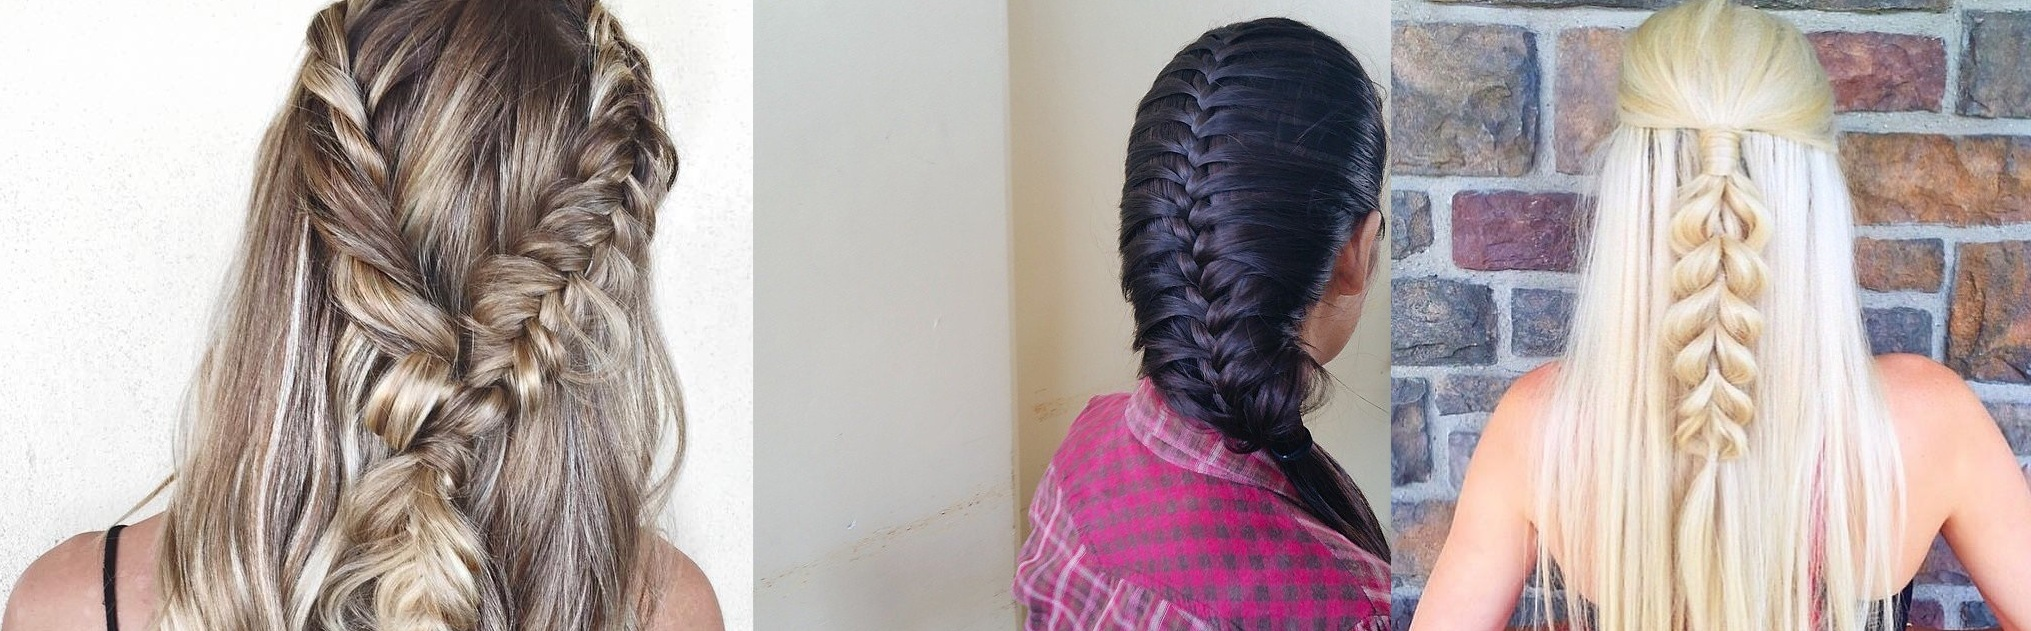 15 pretty hairstyles daily to do quickly Hairdressing